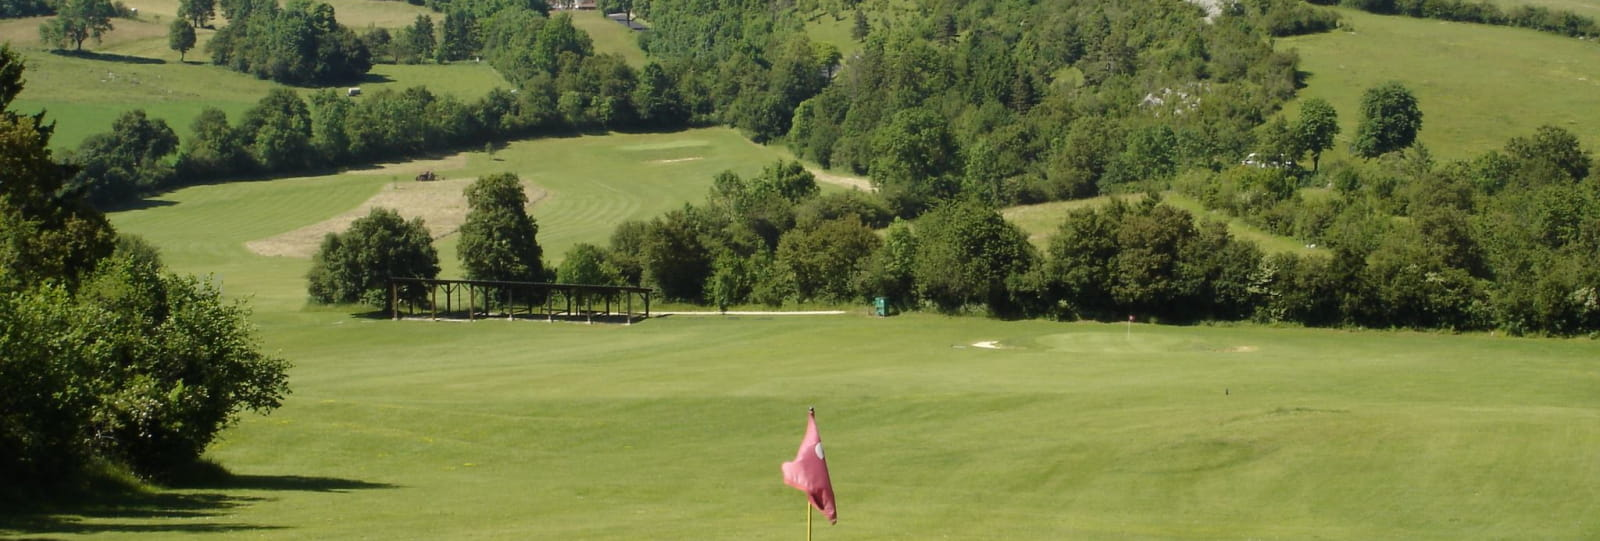 Golf Club Vercors